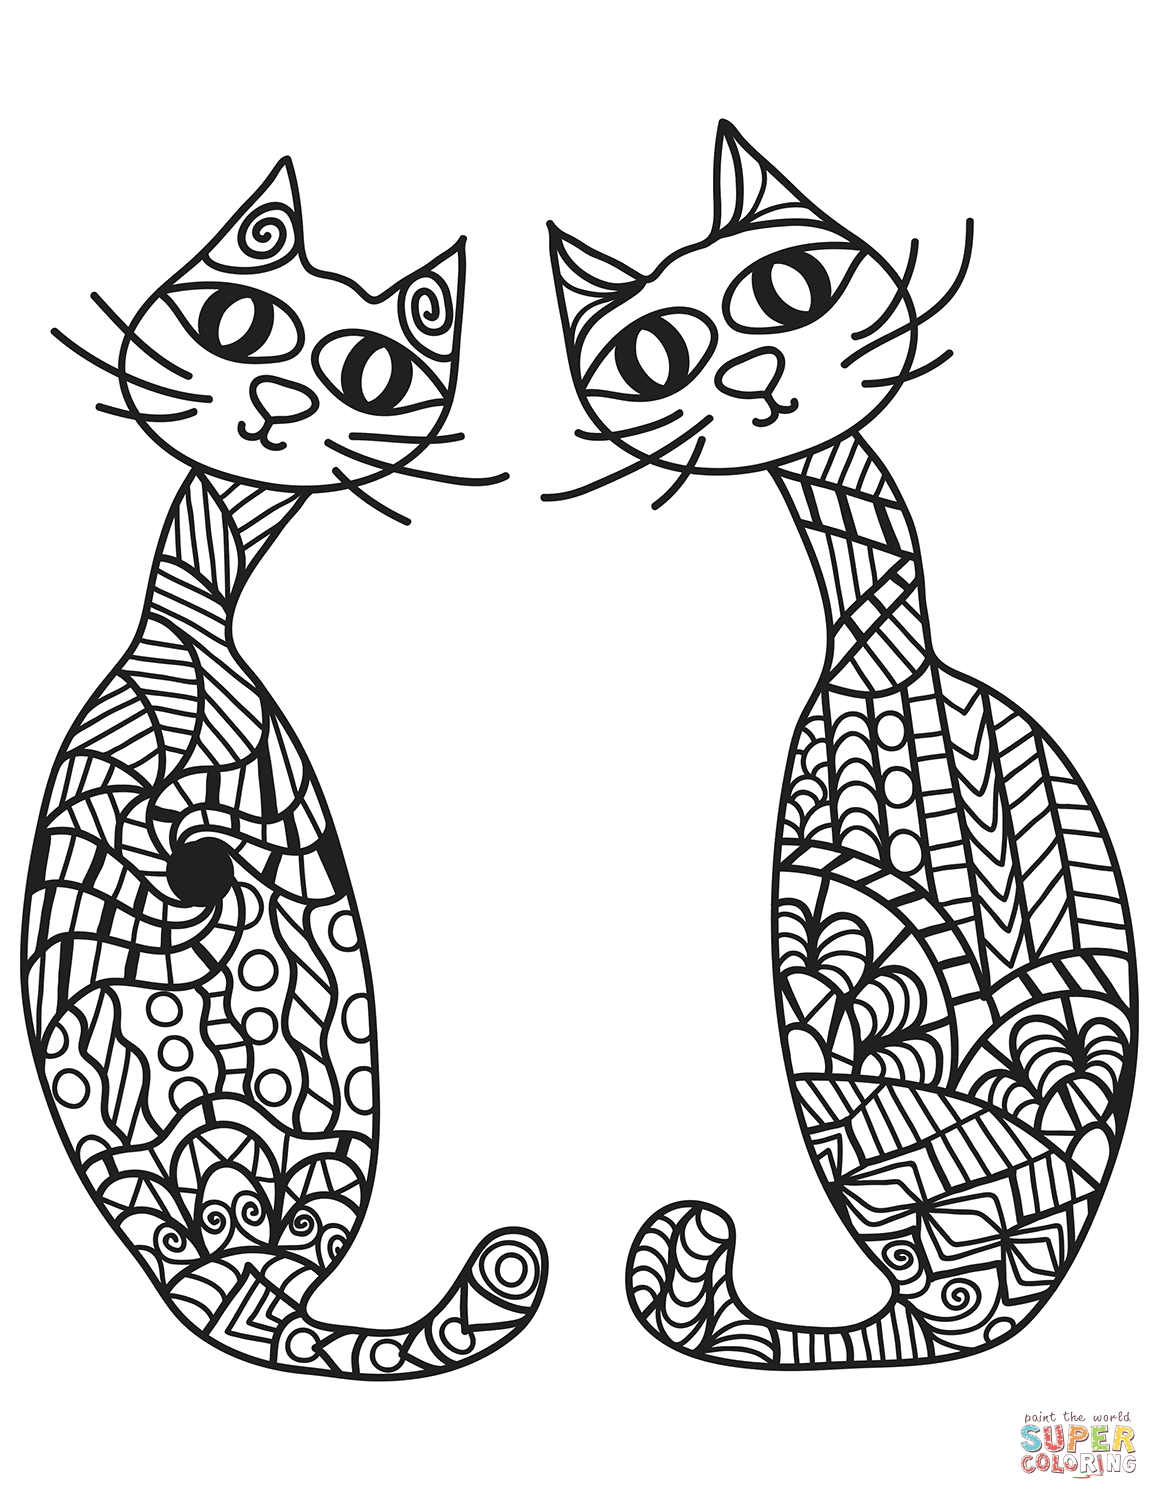 Two Cats In Zentangle Style Coloring Page